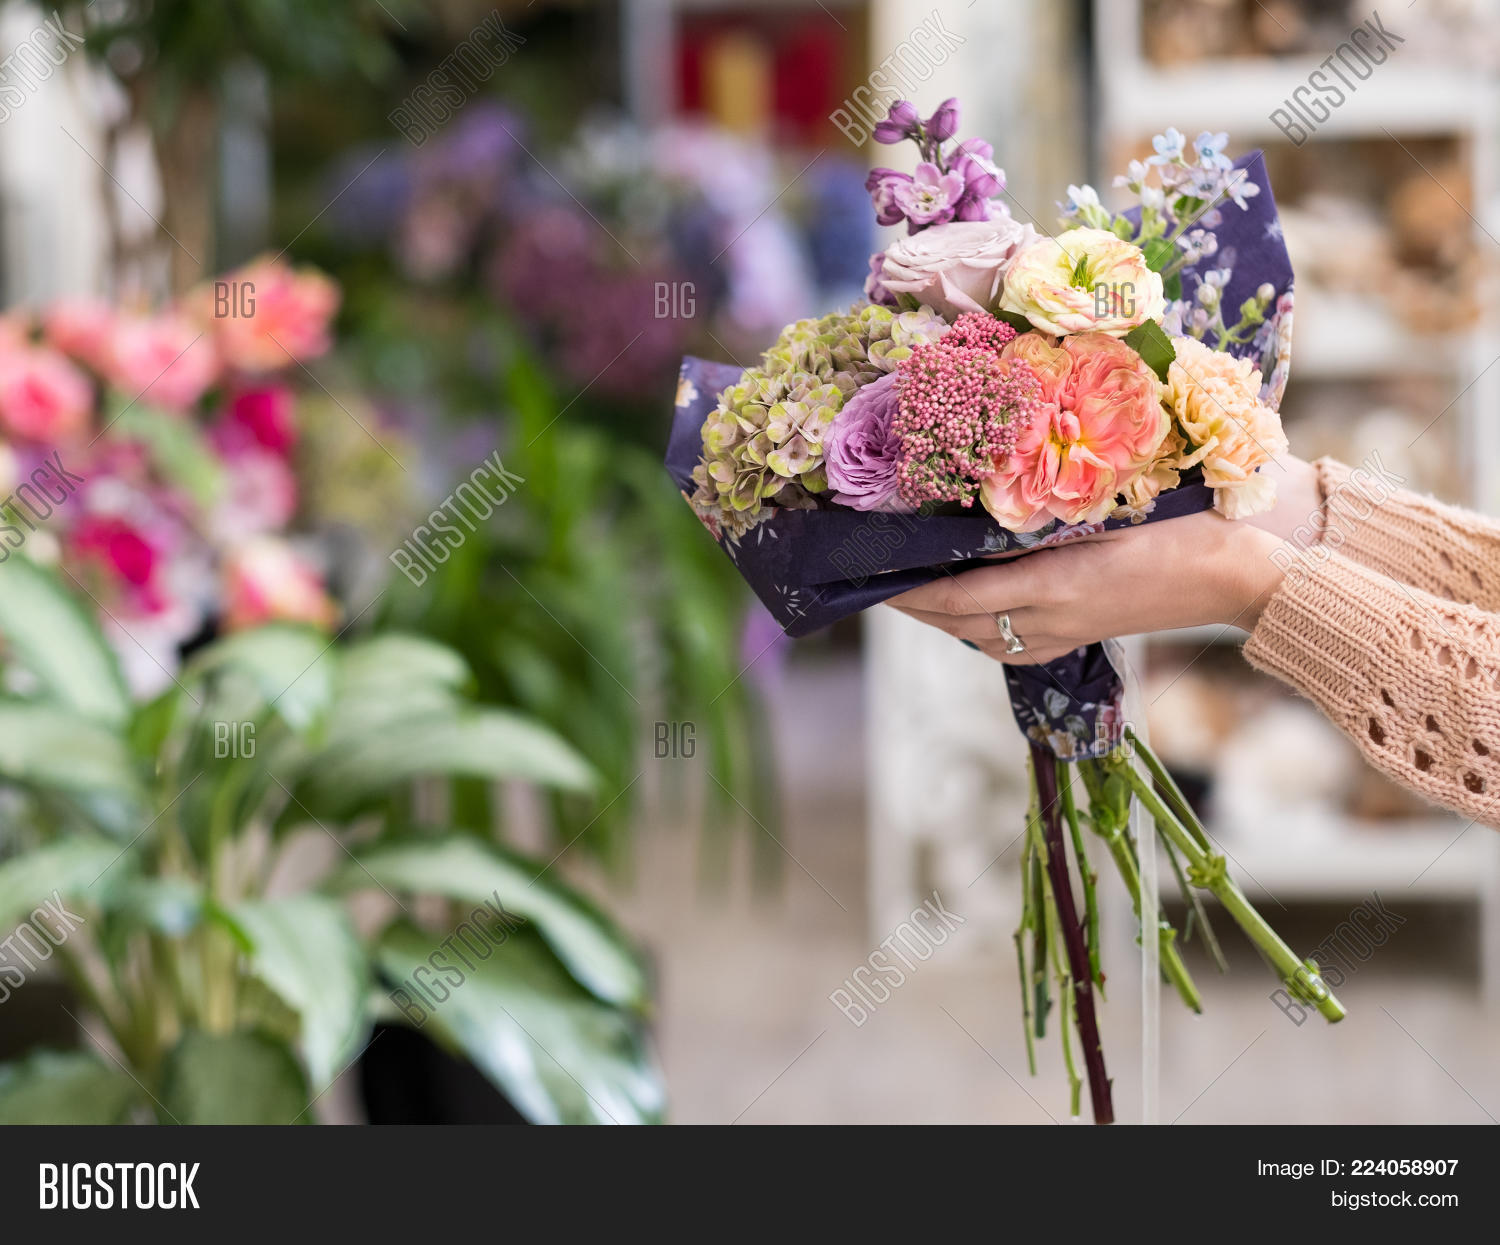 Timely Flower Bouquet Image & Photo (Free Trial)   Bigstock